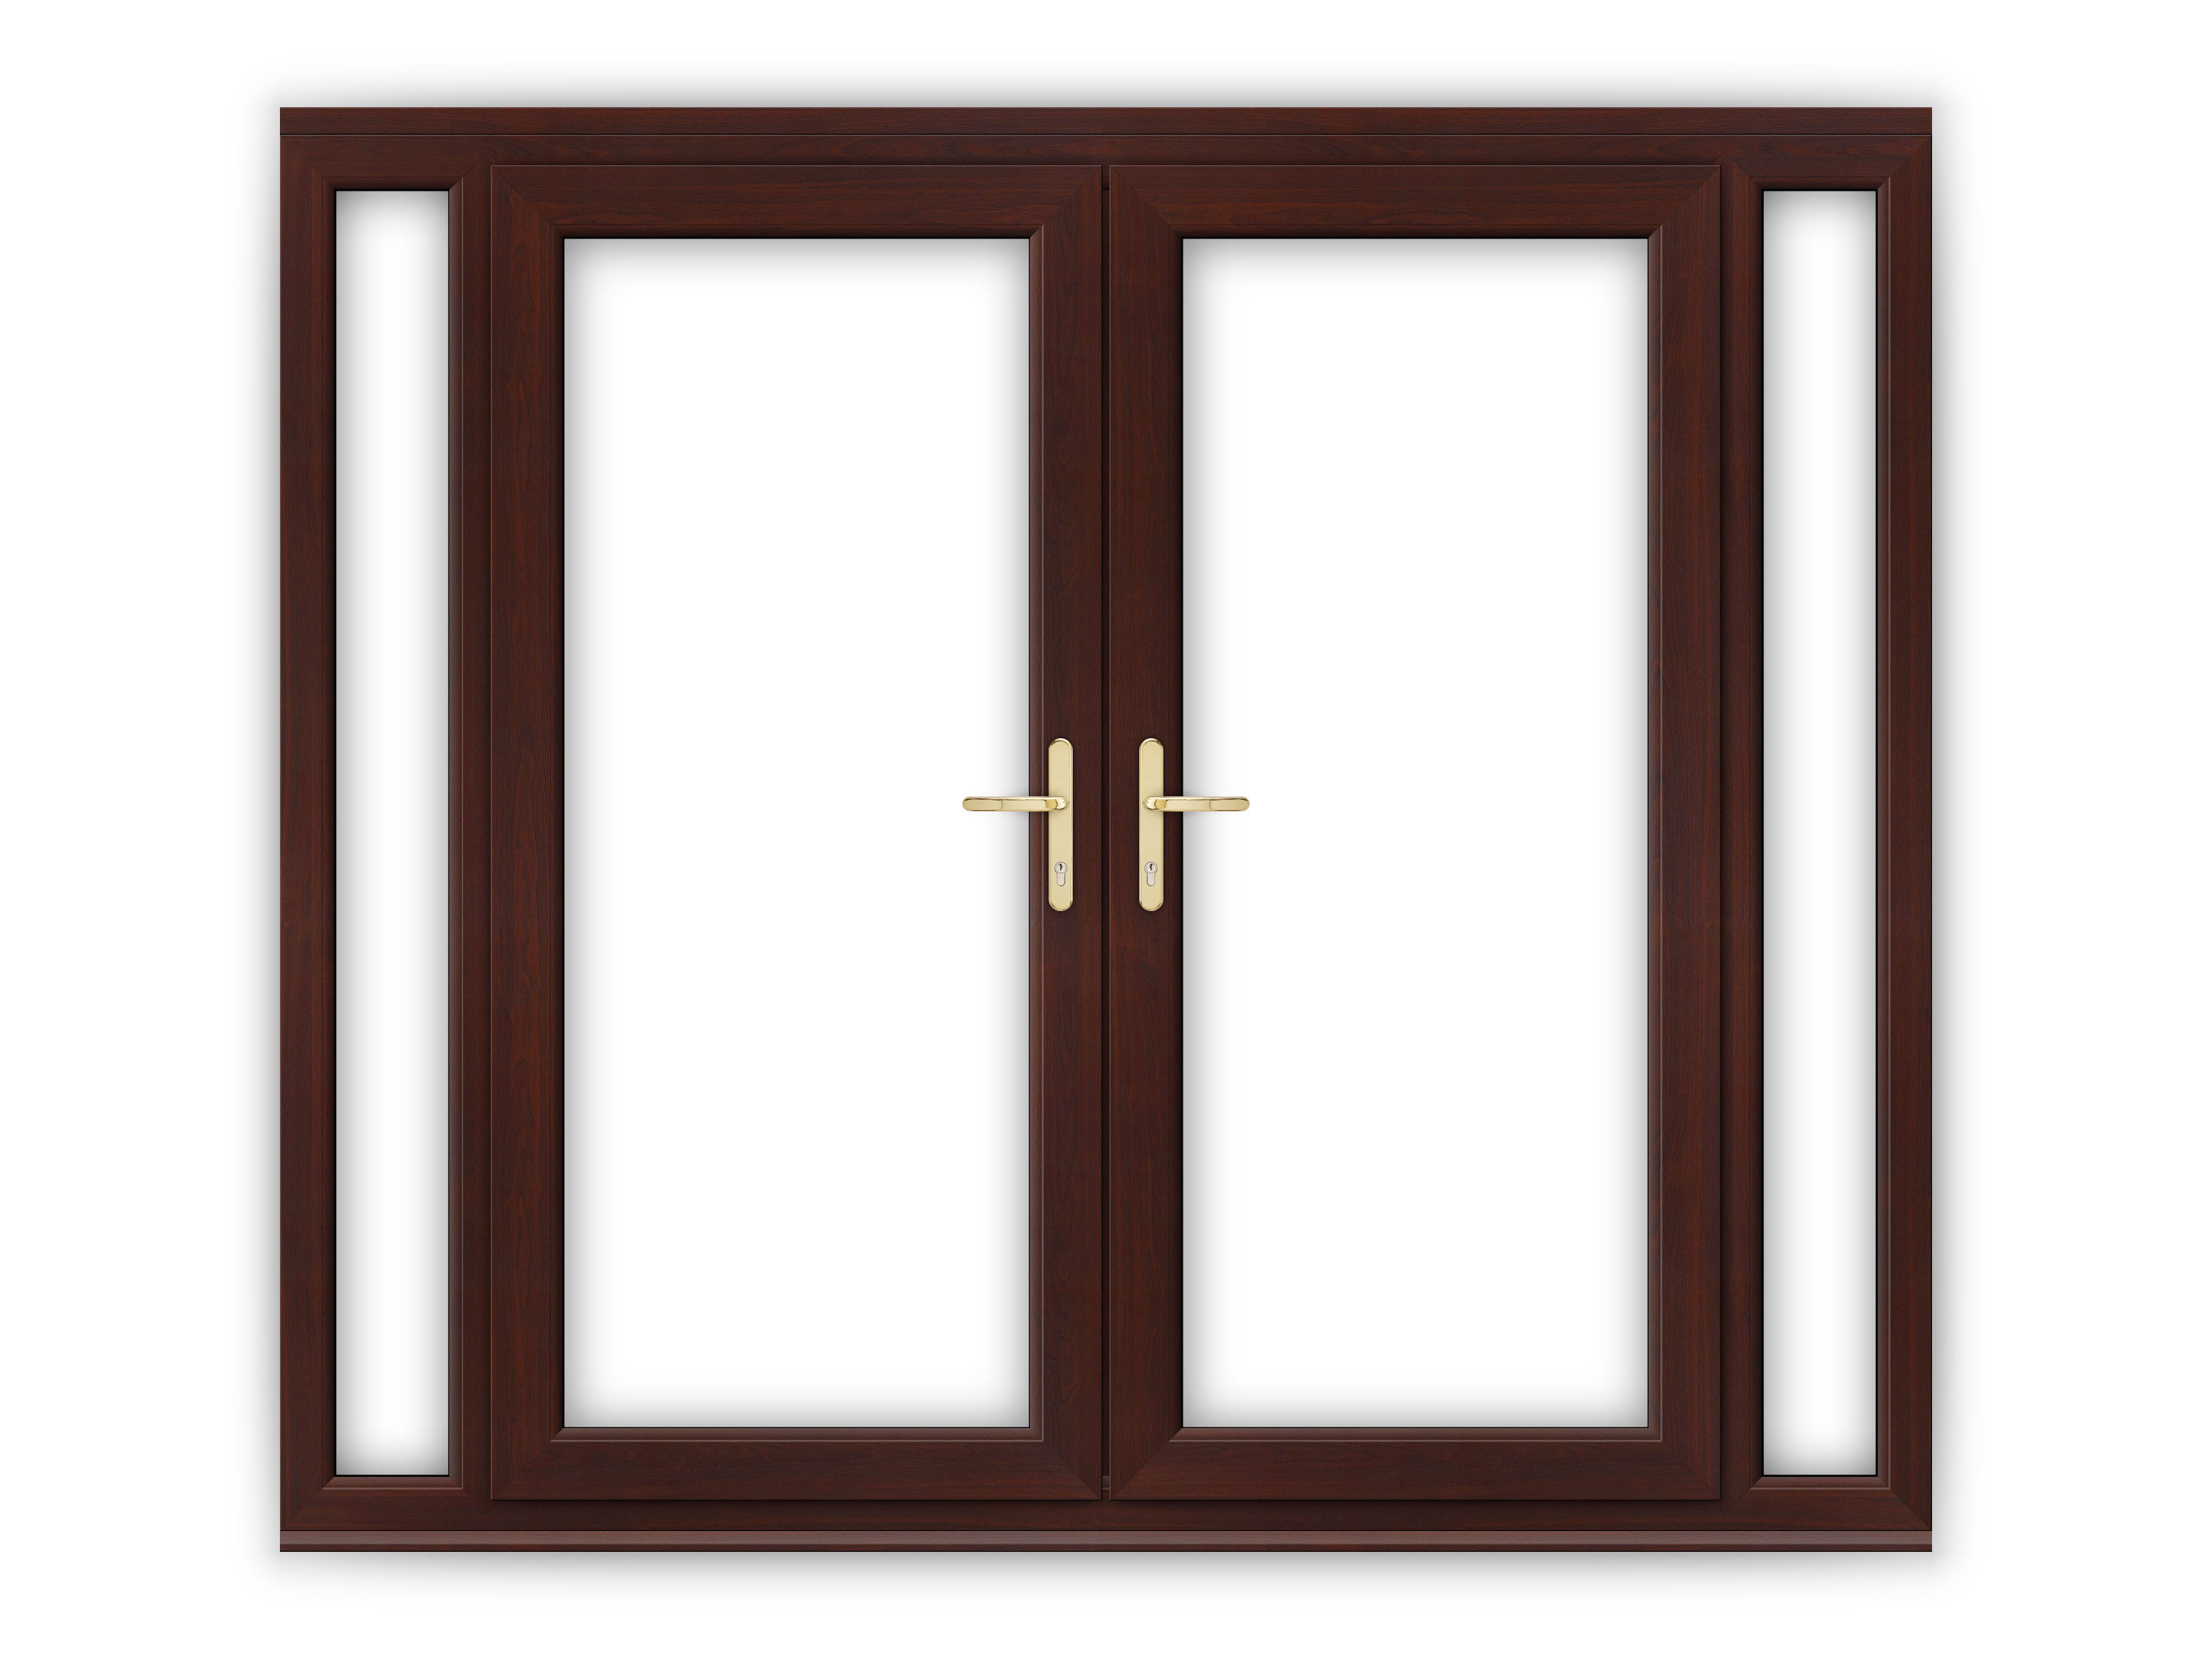 6ft rosewood upvc french doors with narrow side panels for Brown upvc patio doors